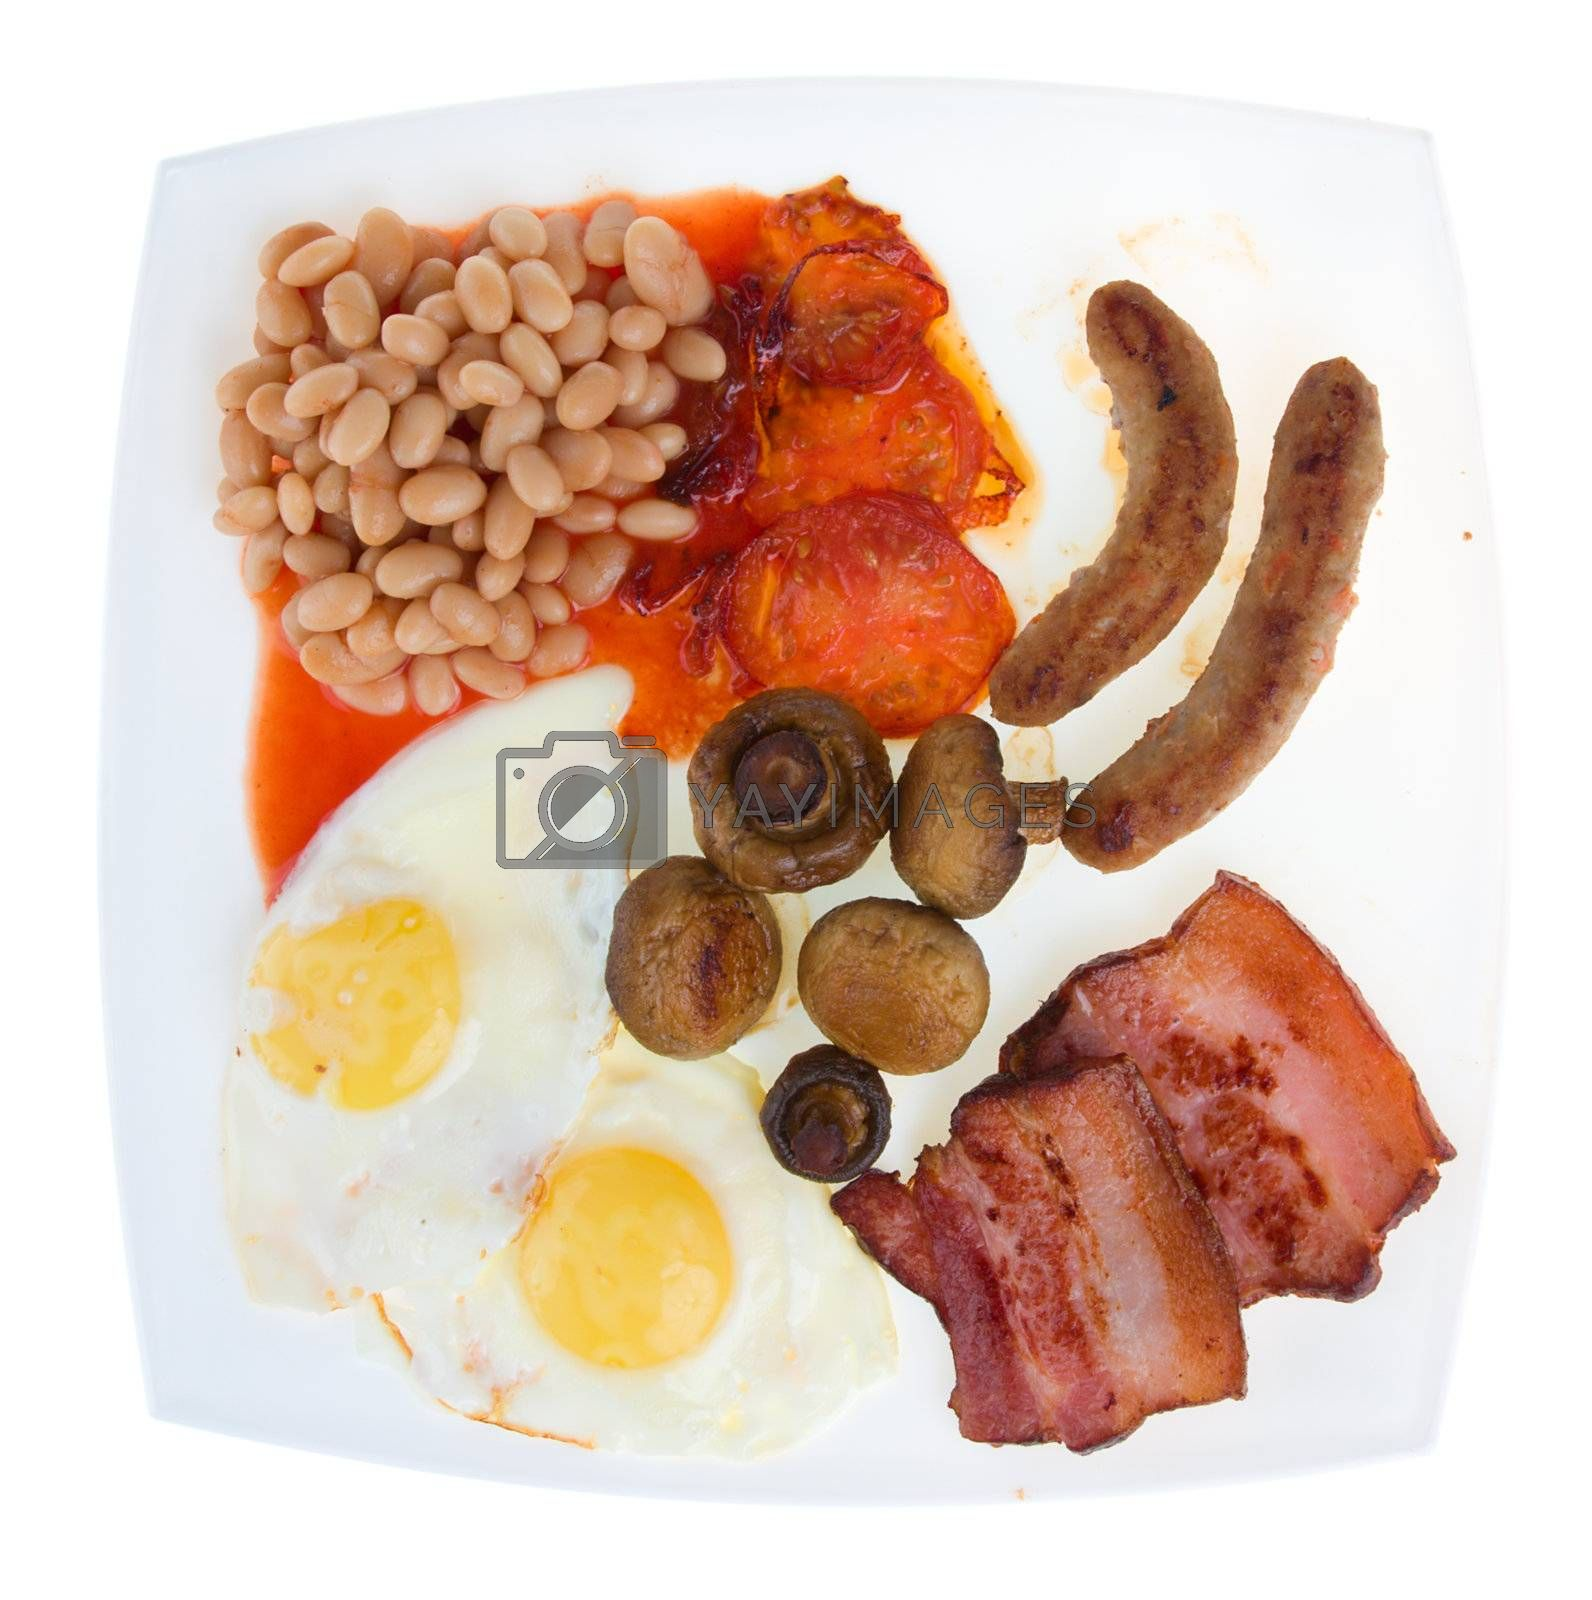 close-up traditional english breakfast, isolated on white